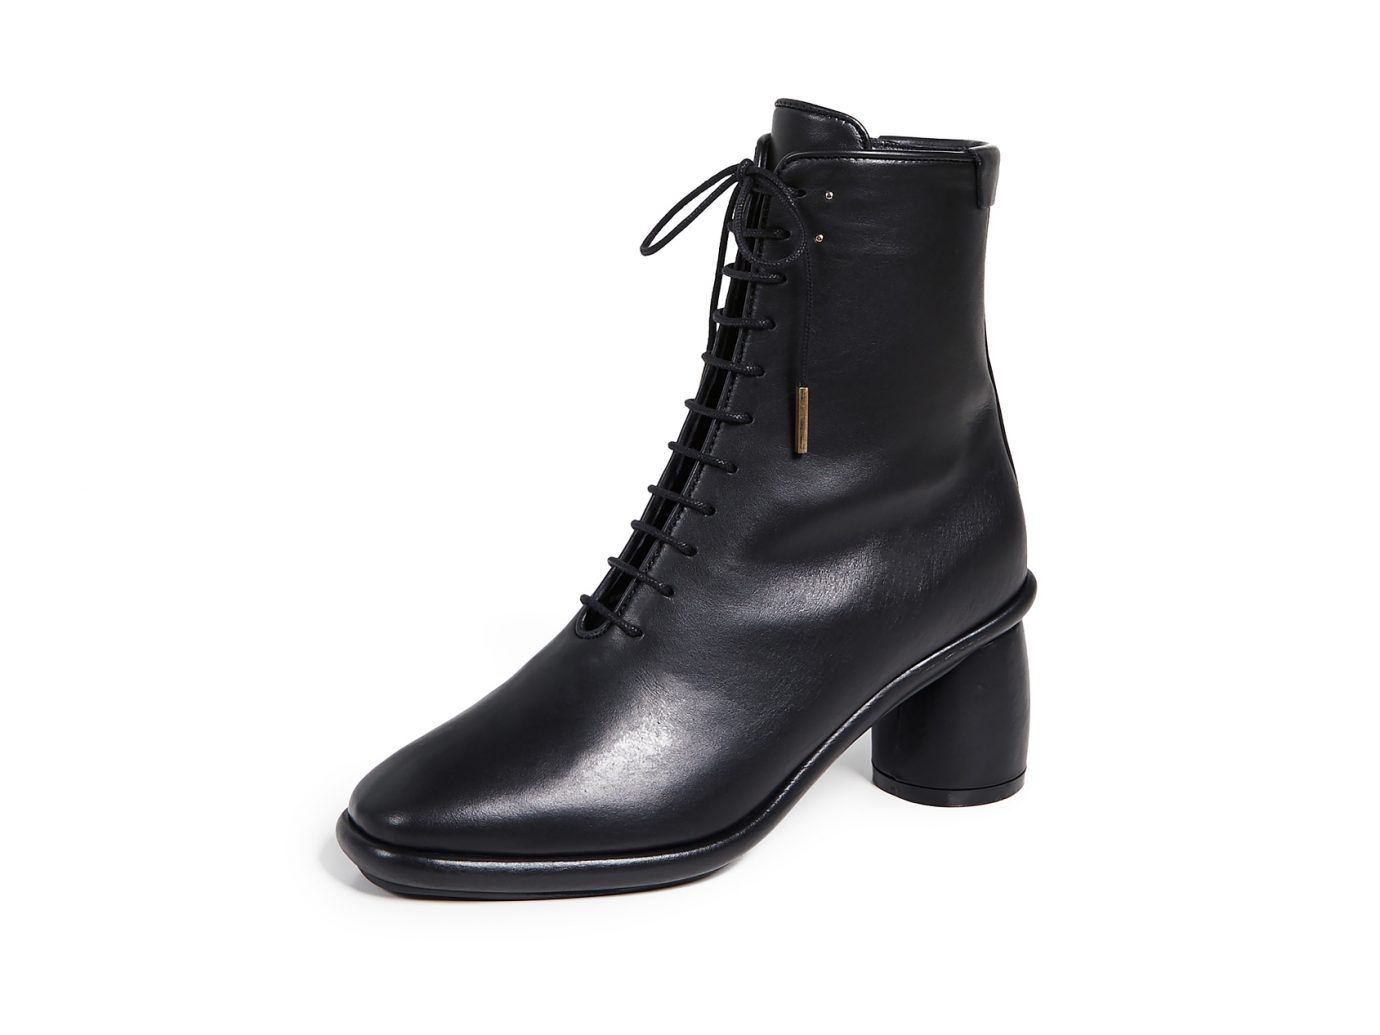 Reike Nen Plain Middle Lace-up Boot